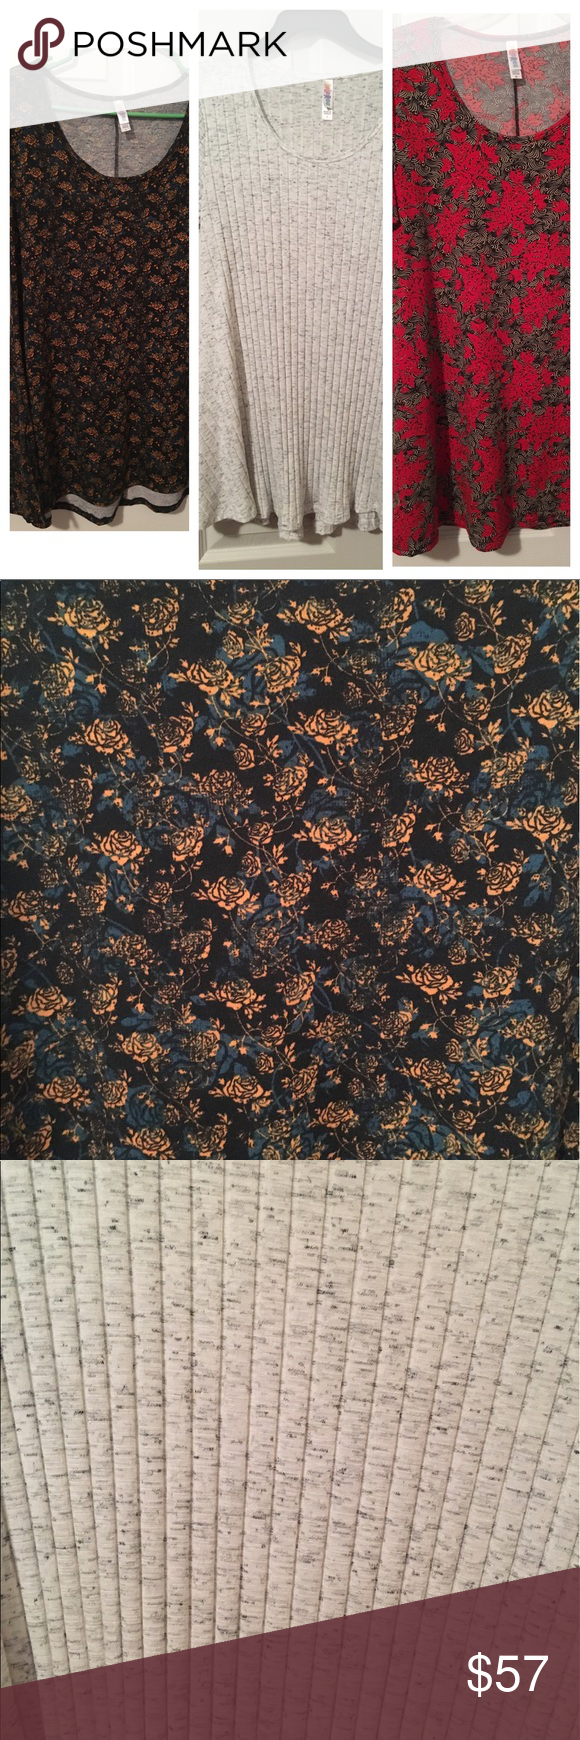 Bundle -  LuLaRoe perfect tees (1 XS & 2 Small) 3 LuLaRoe perfect tees in EUC  One small white ribbed perfect tee with black/gray heathering throughout - sweater material One small dark blue perfect tee with light blue and mustard distressed rose print throughout - slinky material One XS perfect tee with cream/black abstract design throughout and red floral print overlay - cotton material LuLaRoe Tops Tees - Short Sleeve